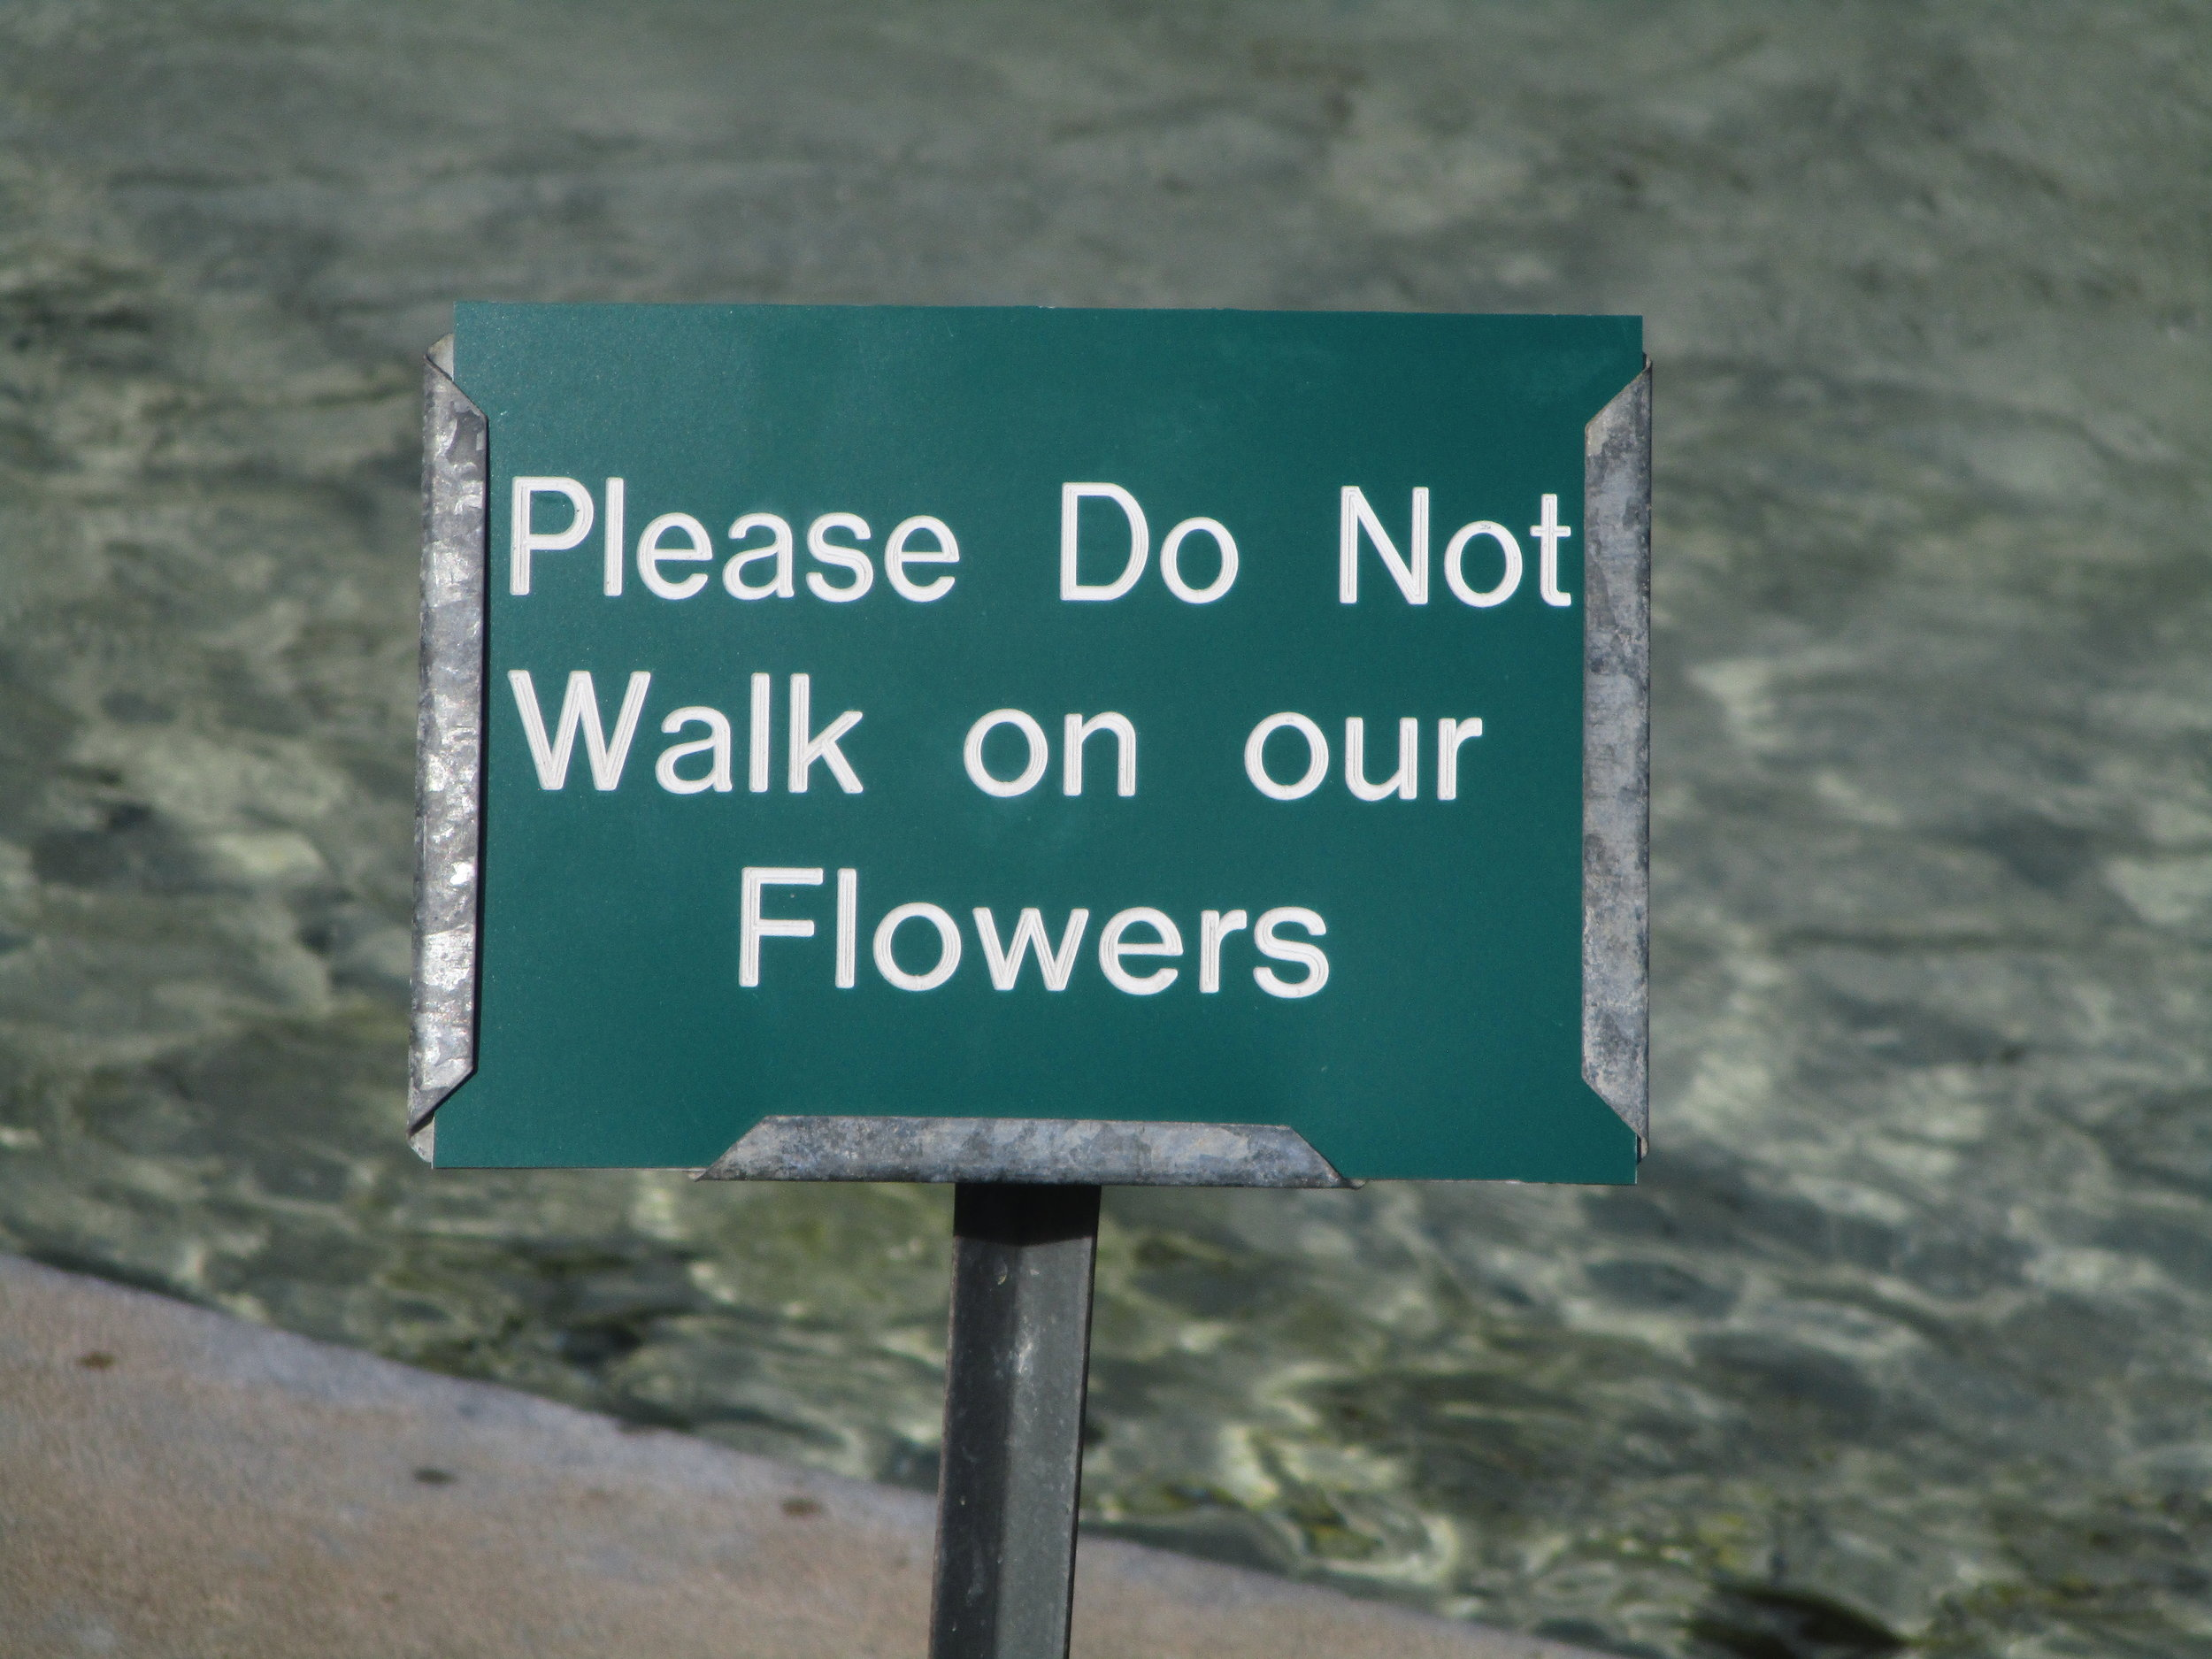 Seen in City Park, New Orleans. How sad that signs such as these are necessary.